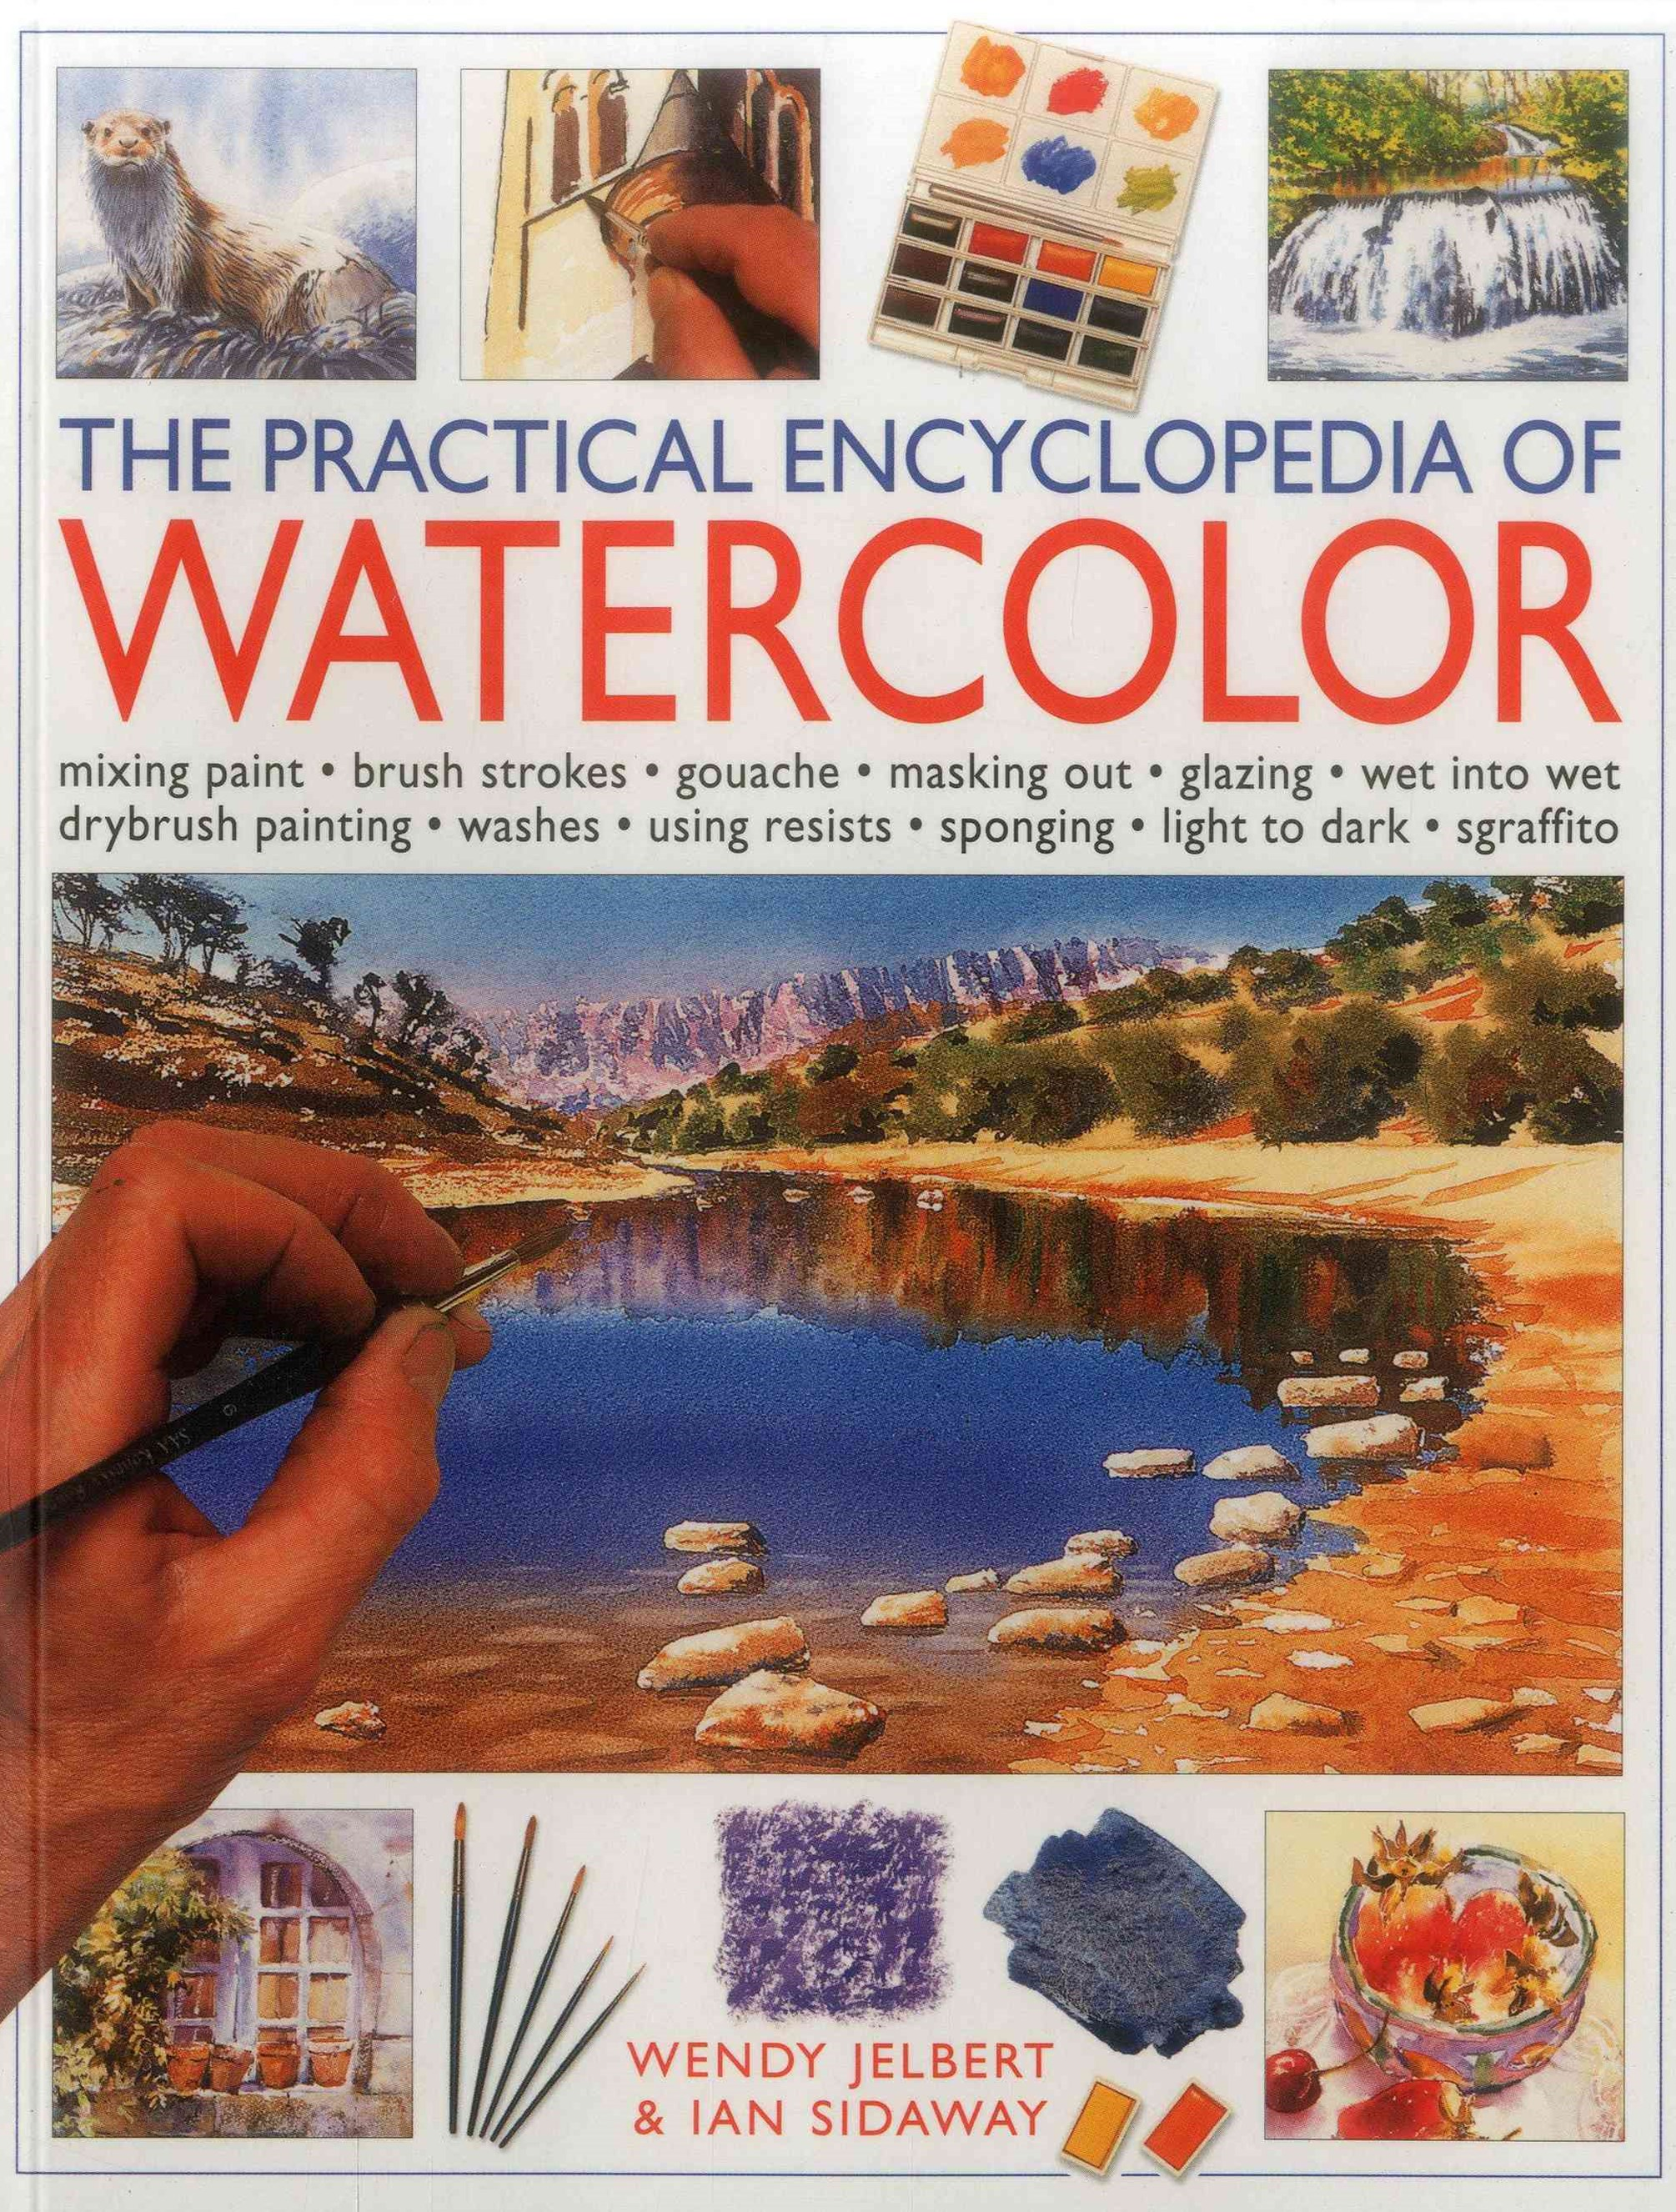 The Practical Encyclopedia of Watercolor